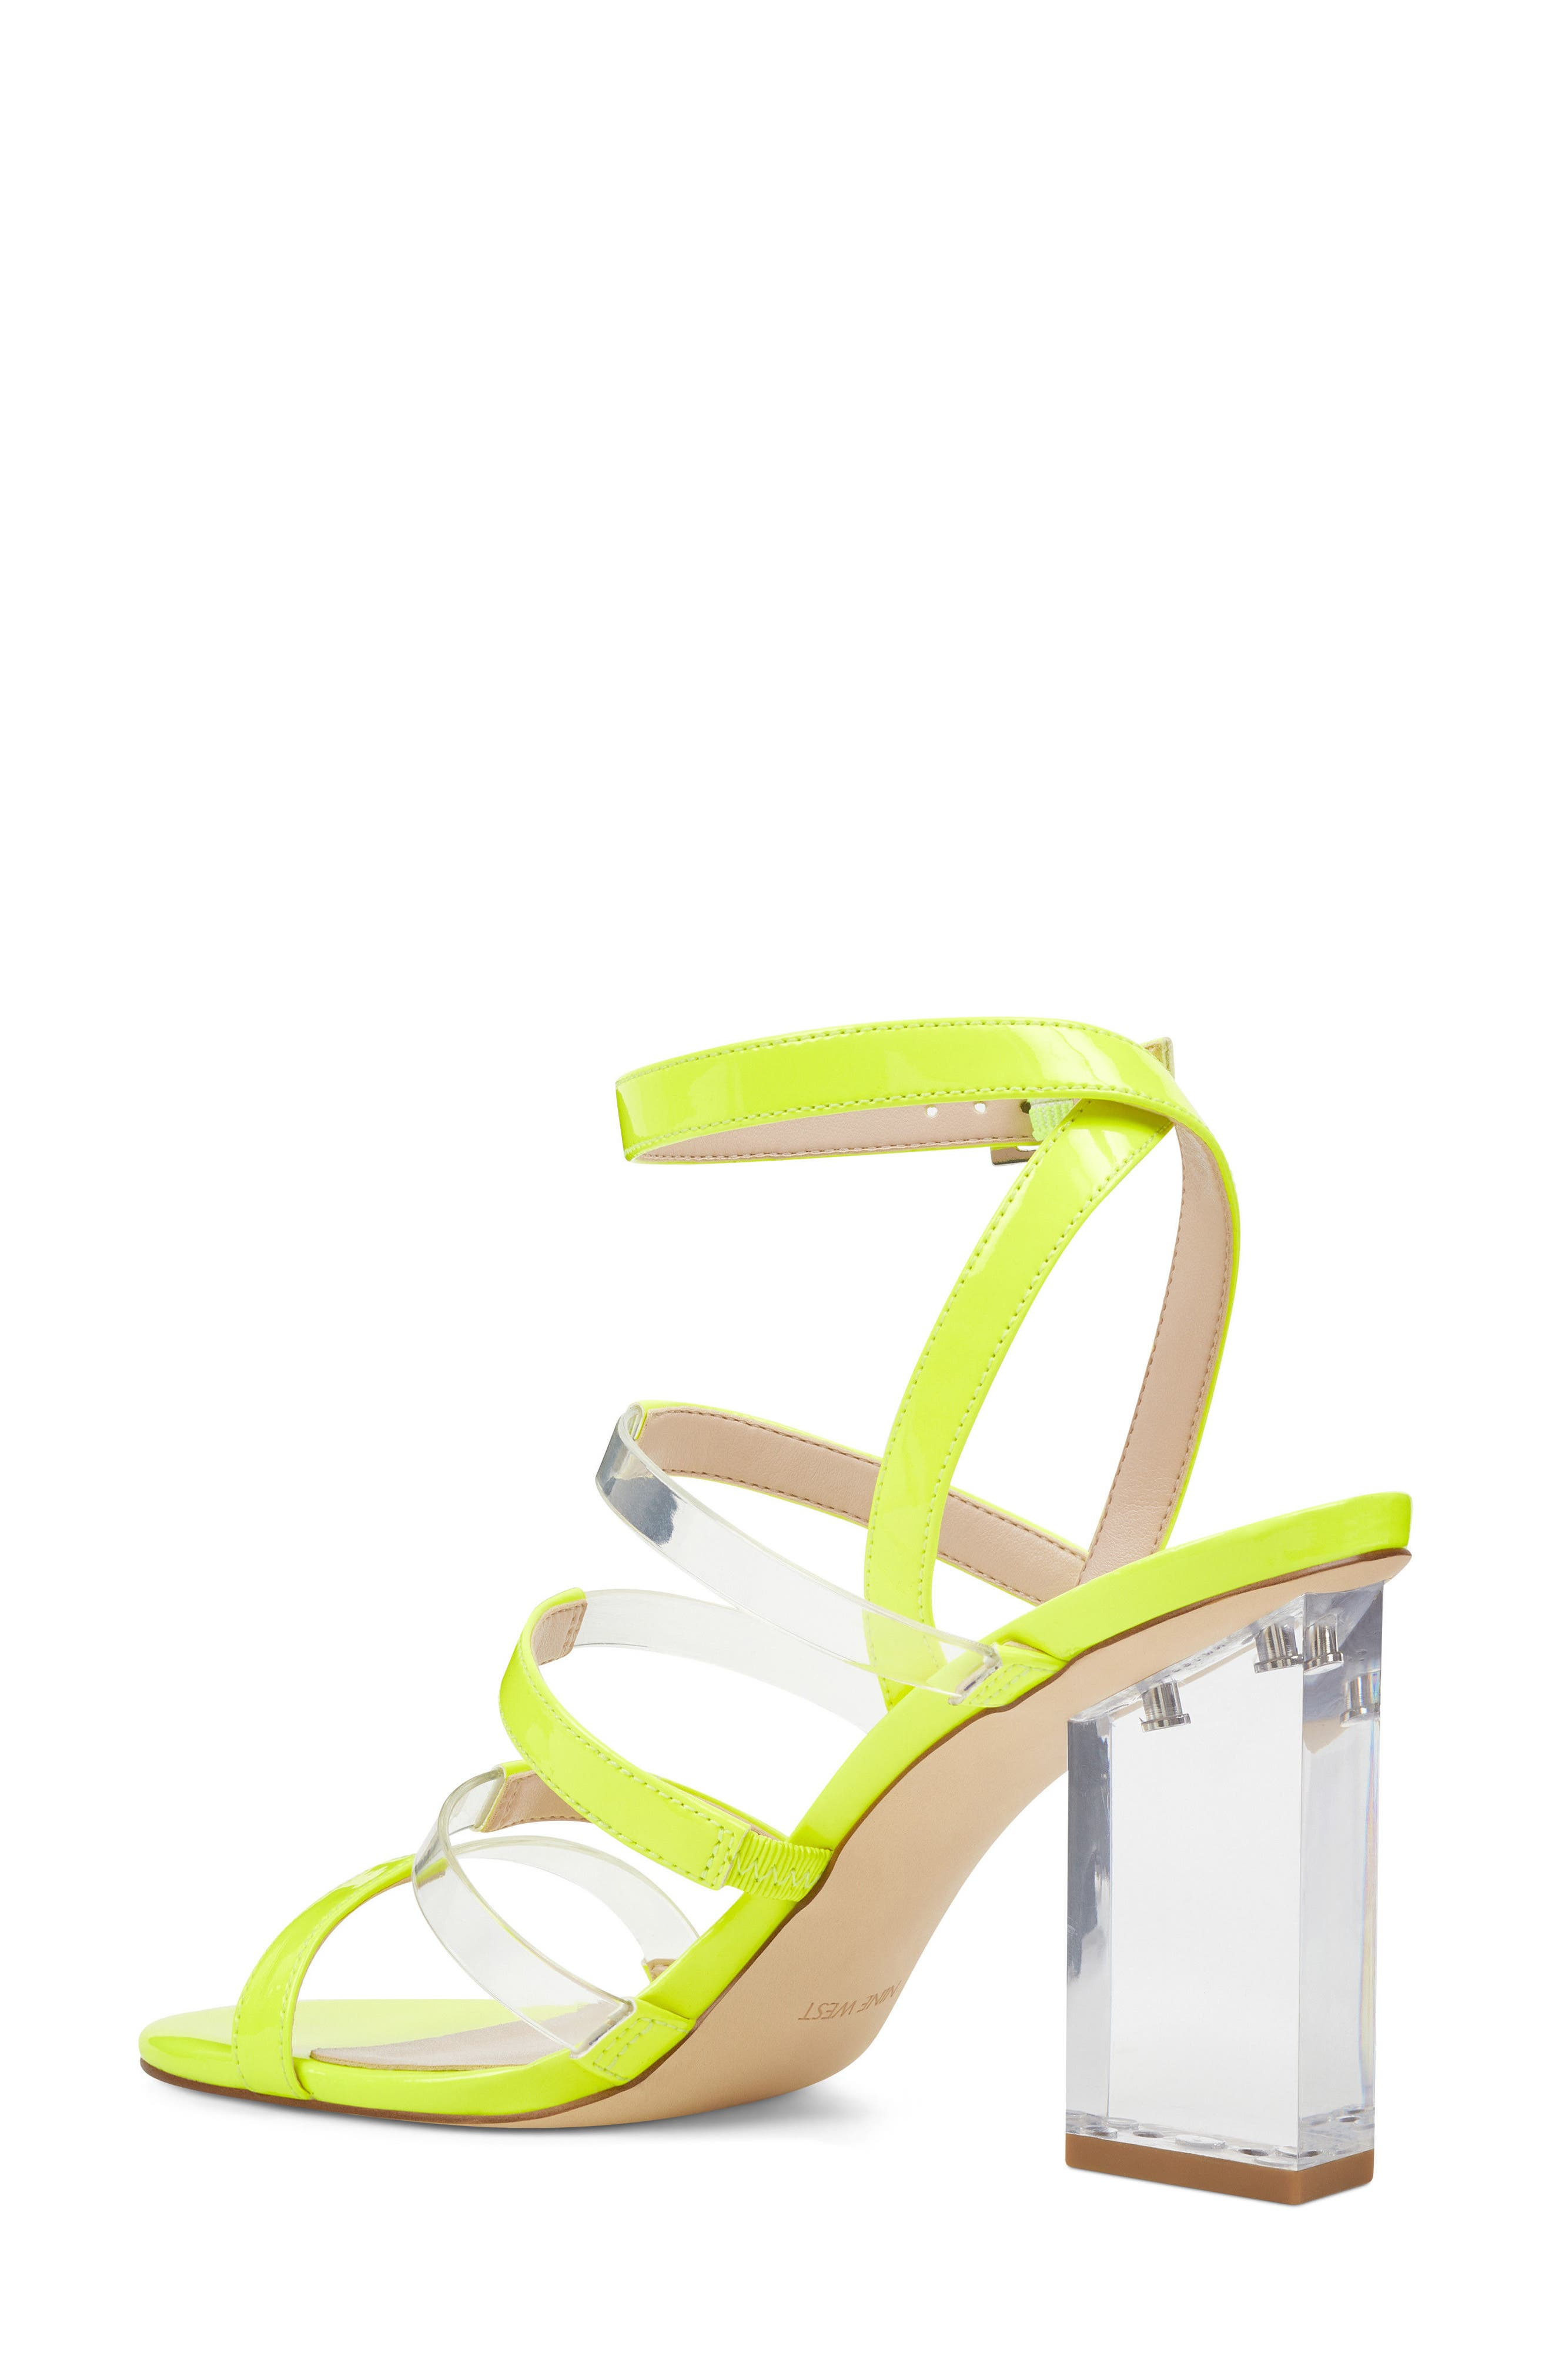 Fazzani Cage Sandal,                             Alternate thumbnail 2, color,                             Clear/ Yellow Faux Leather